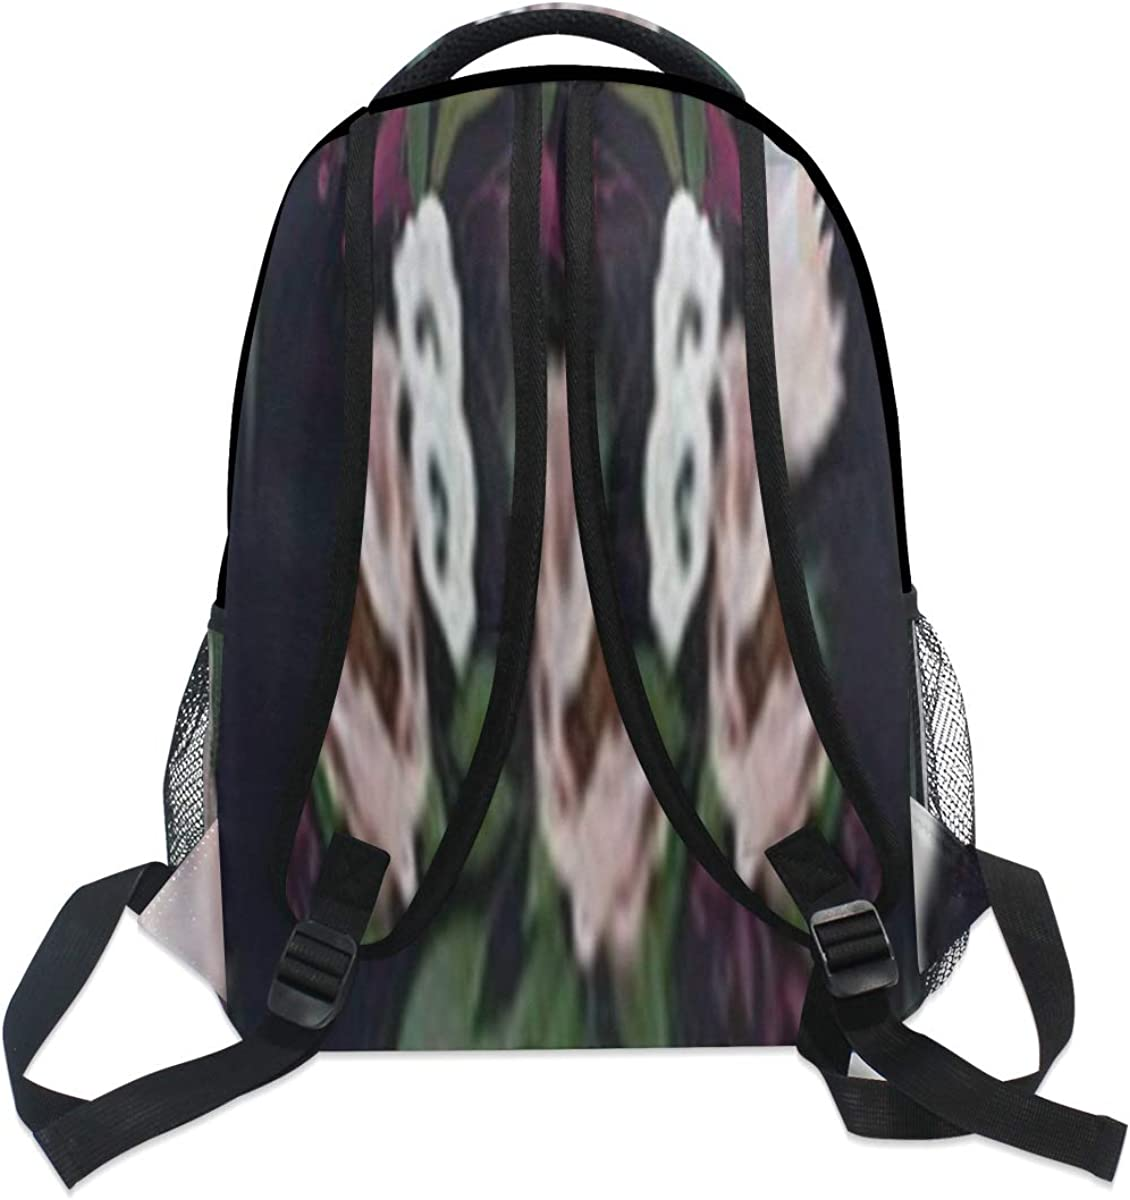 Backpack Bag Romantic Dark Pattern Composed Painted Flowers Backpack For Women Waterproof Casual Daypacks For Young Girls